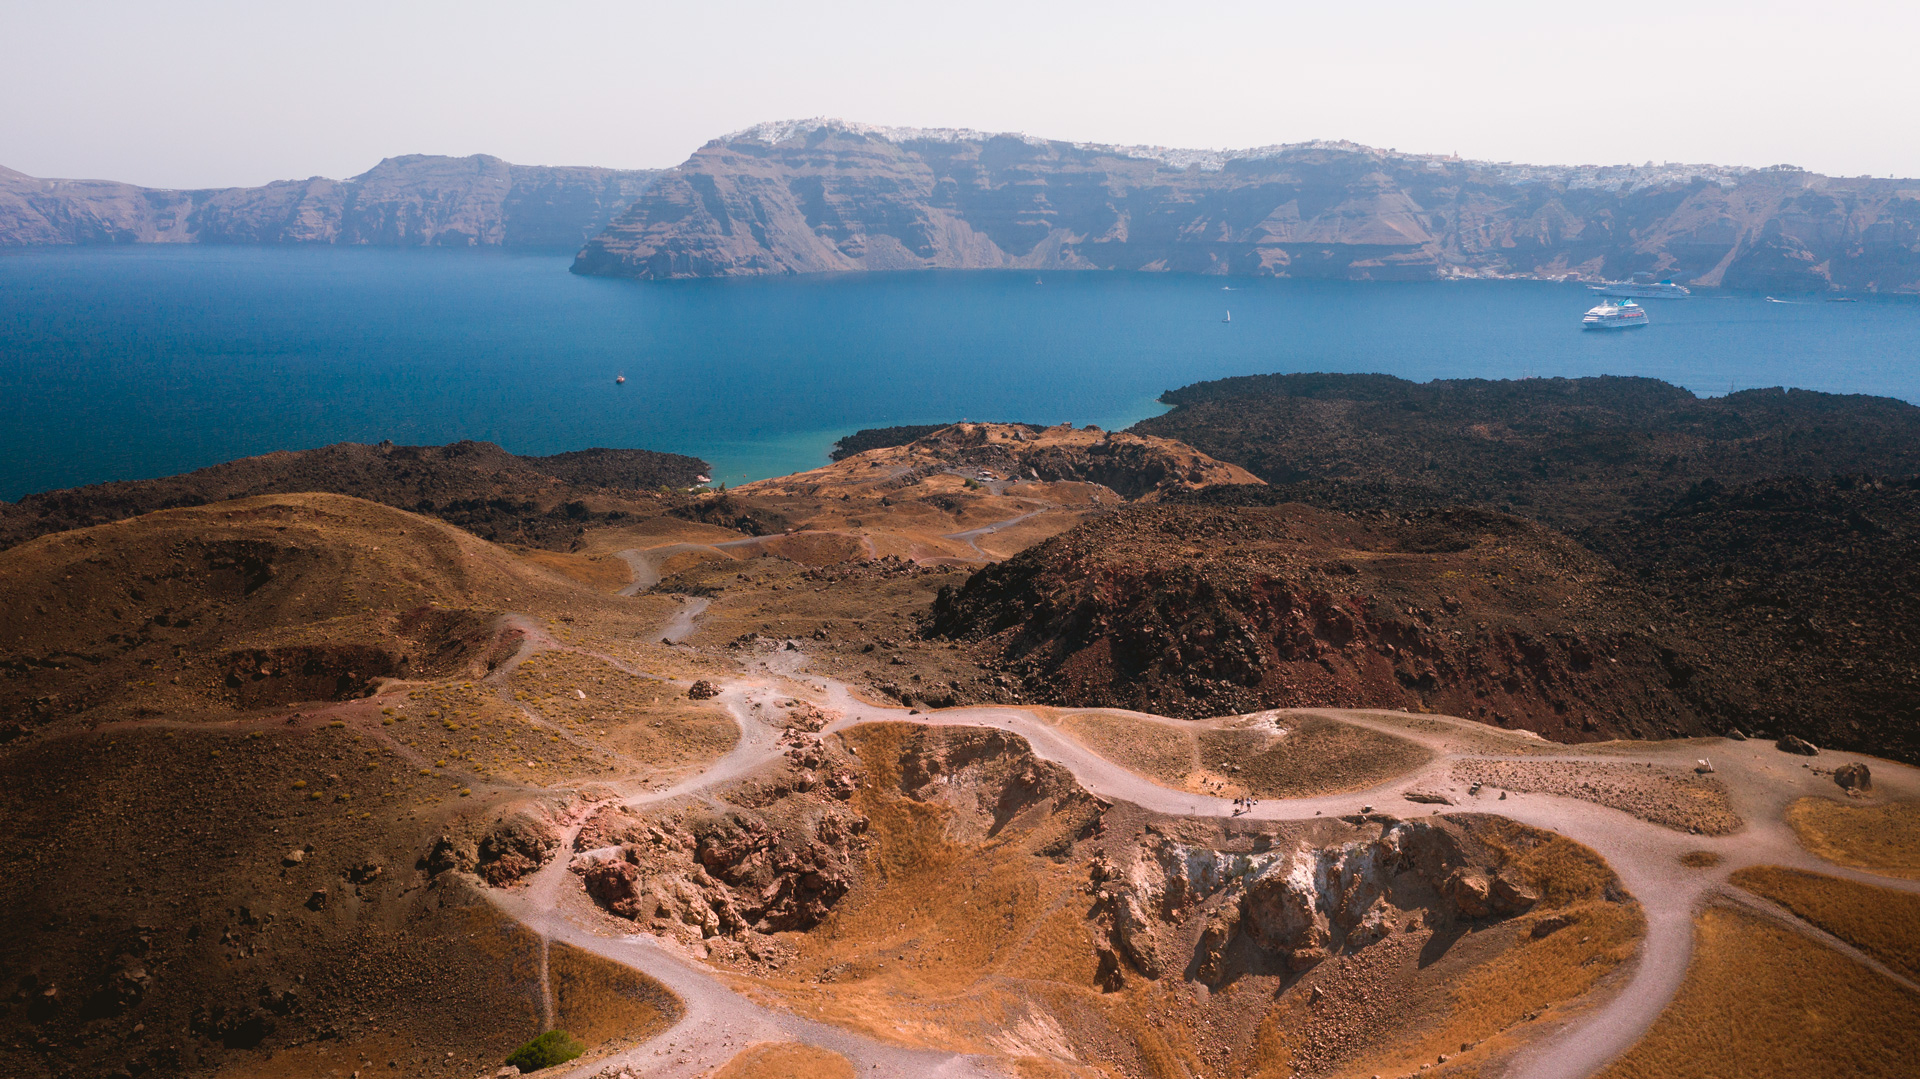 On barren Nea Kameni, it's a 30min hike across black and red petrified lava to the crater of the famous volcano